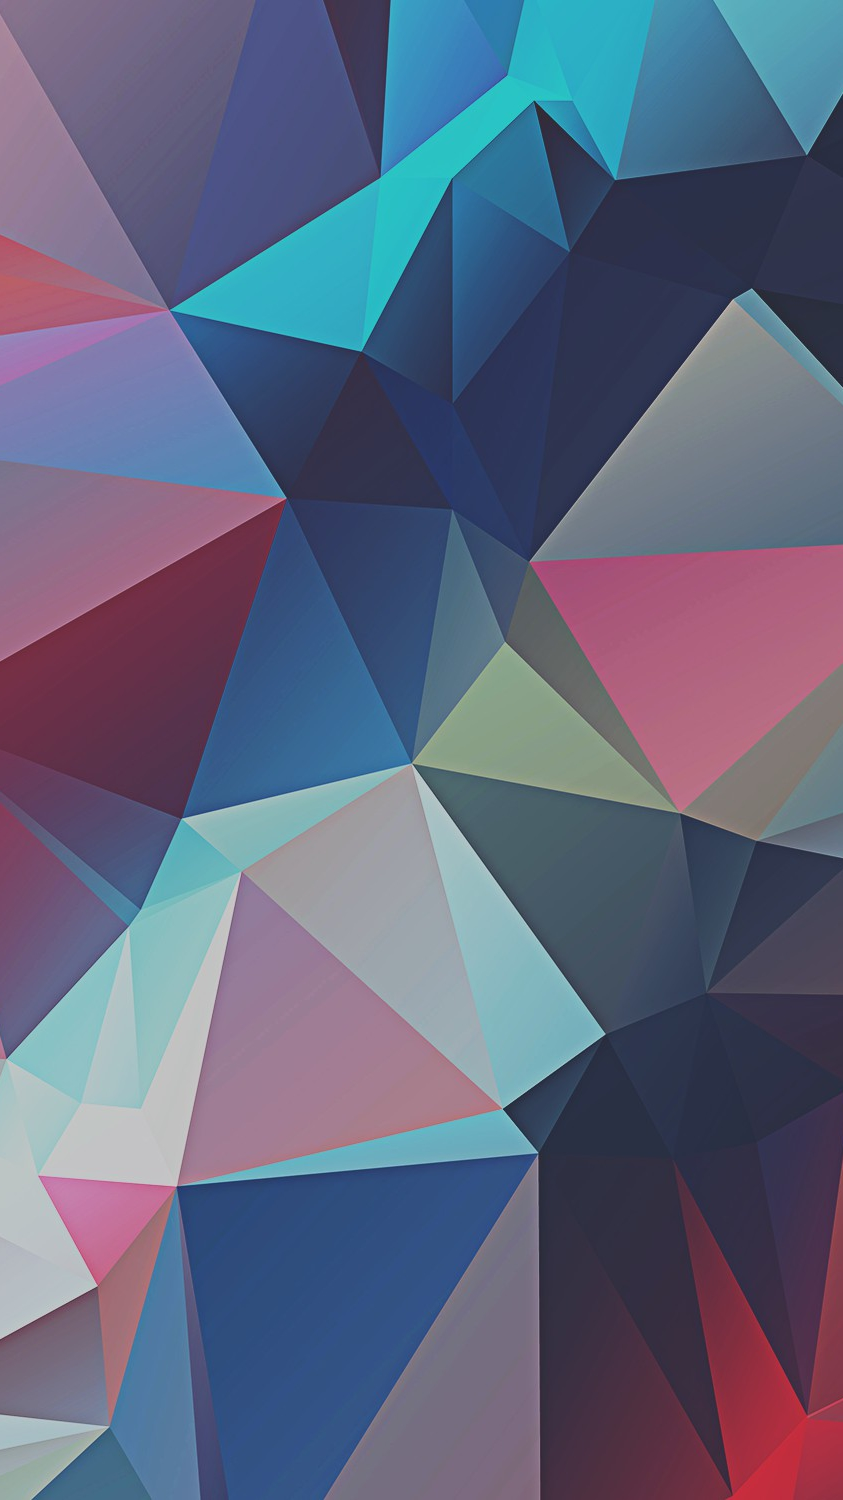 Pinterest Wallpaper Iphone Cute Low Poly Geometric Art Iphone Wallpaper Iphone Wallpapers